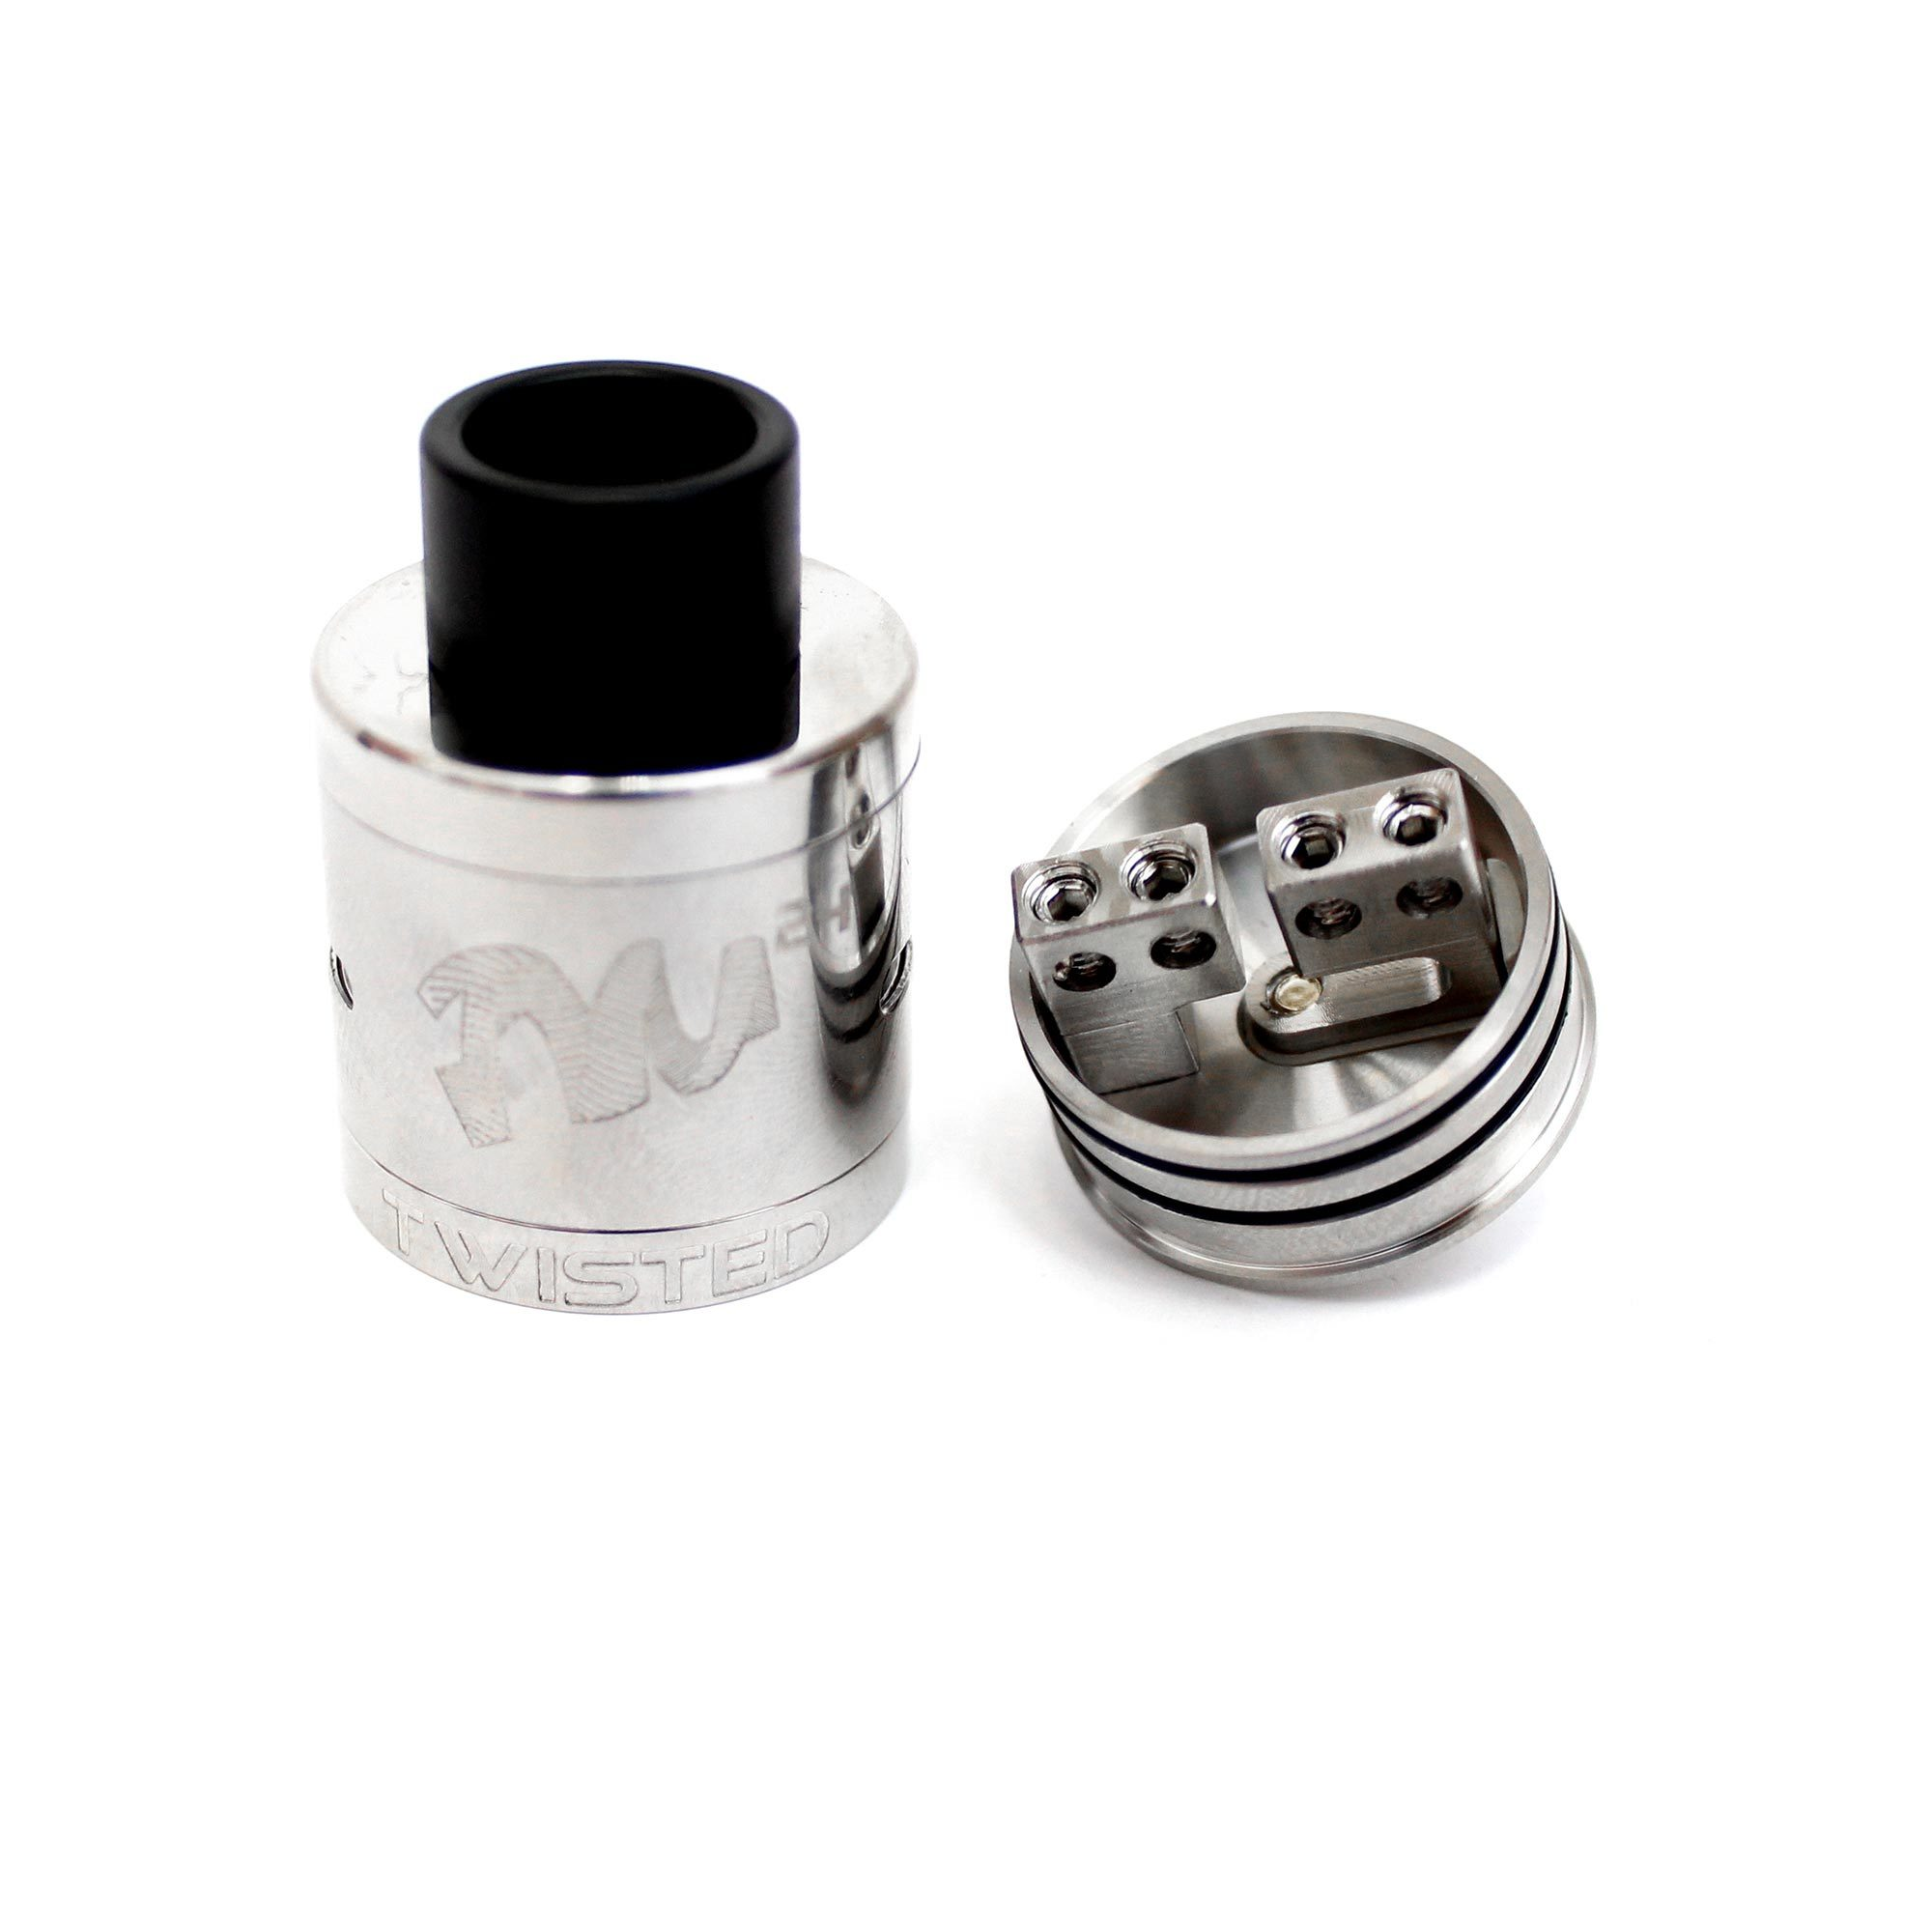 Дрипка Twisted Messes 24mm (Clone) стойки